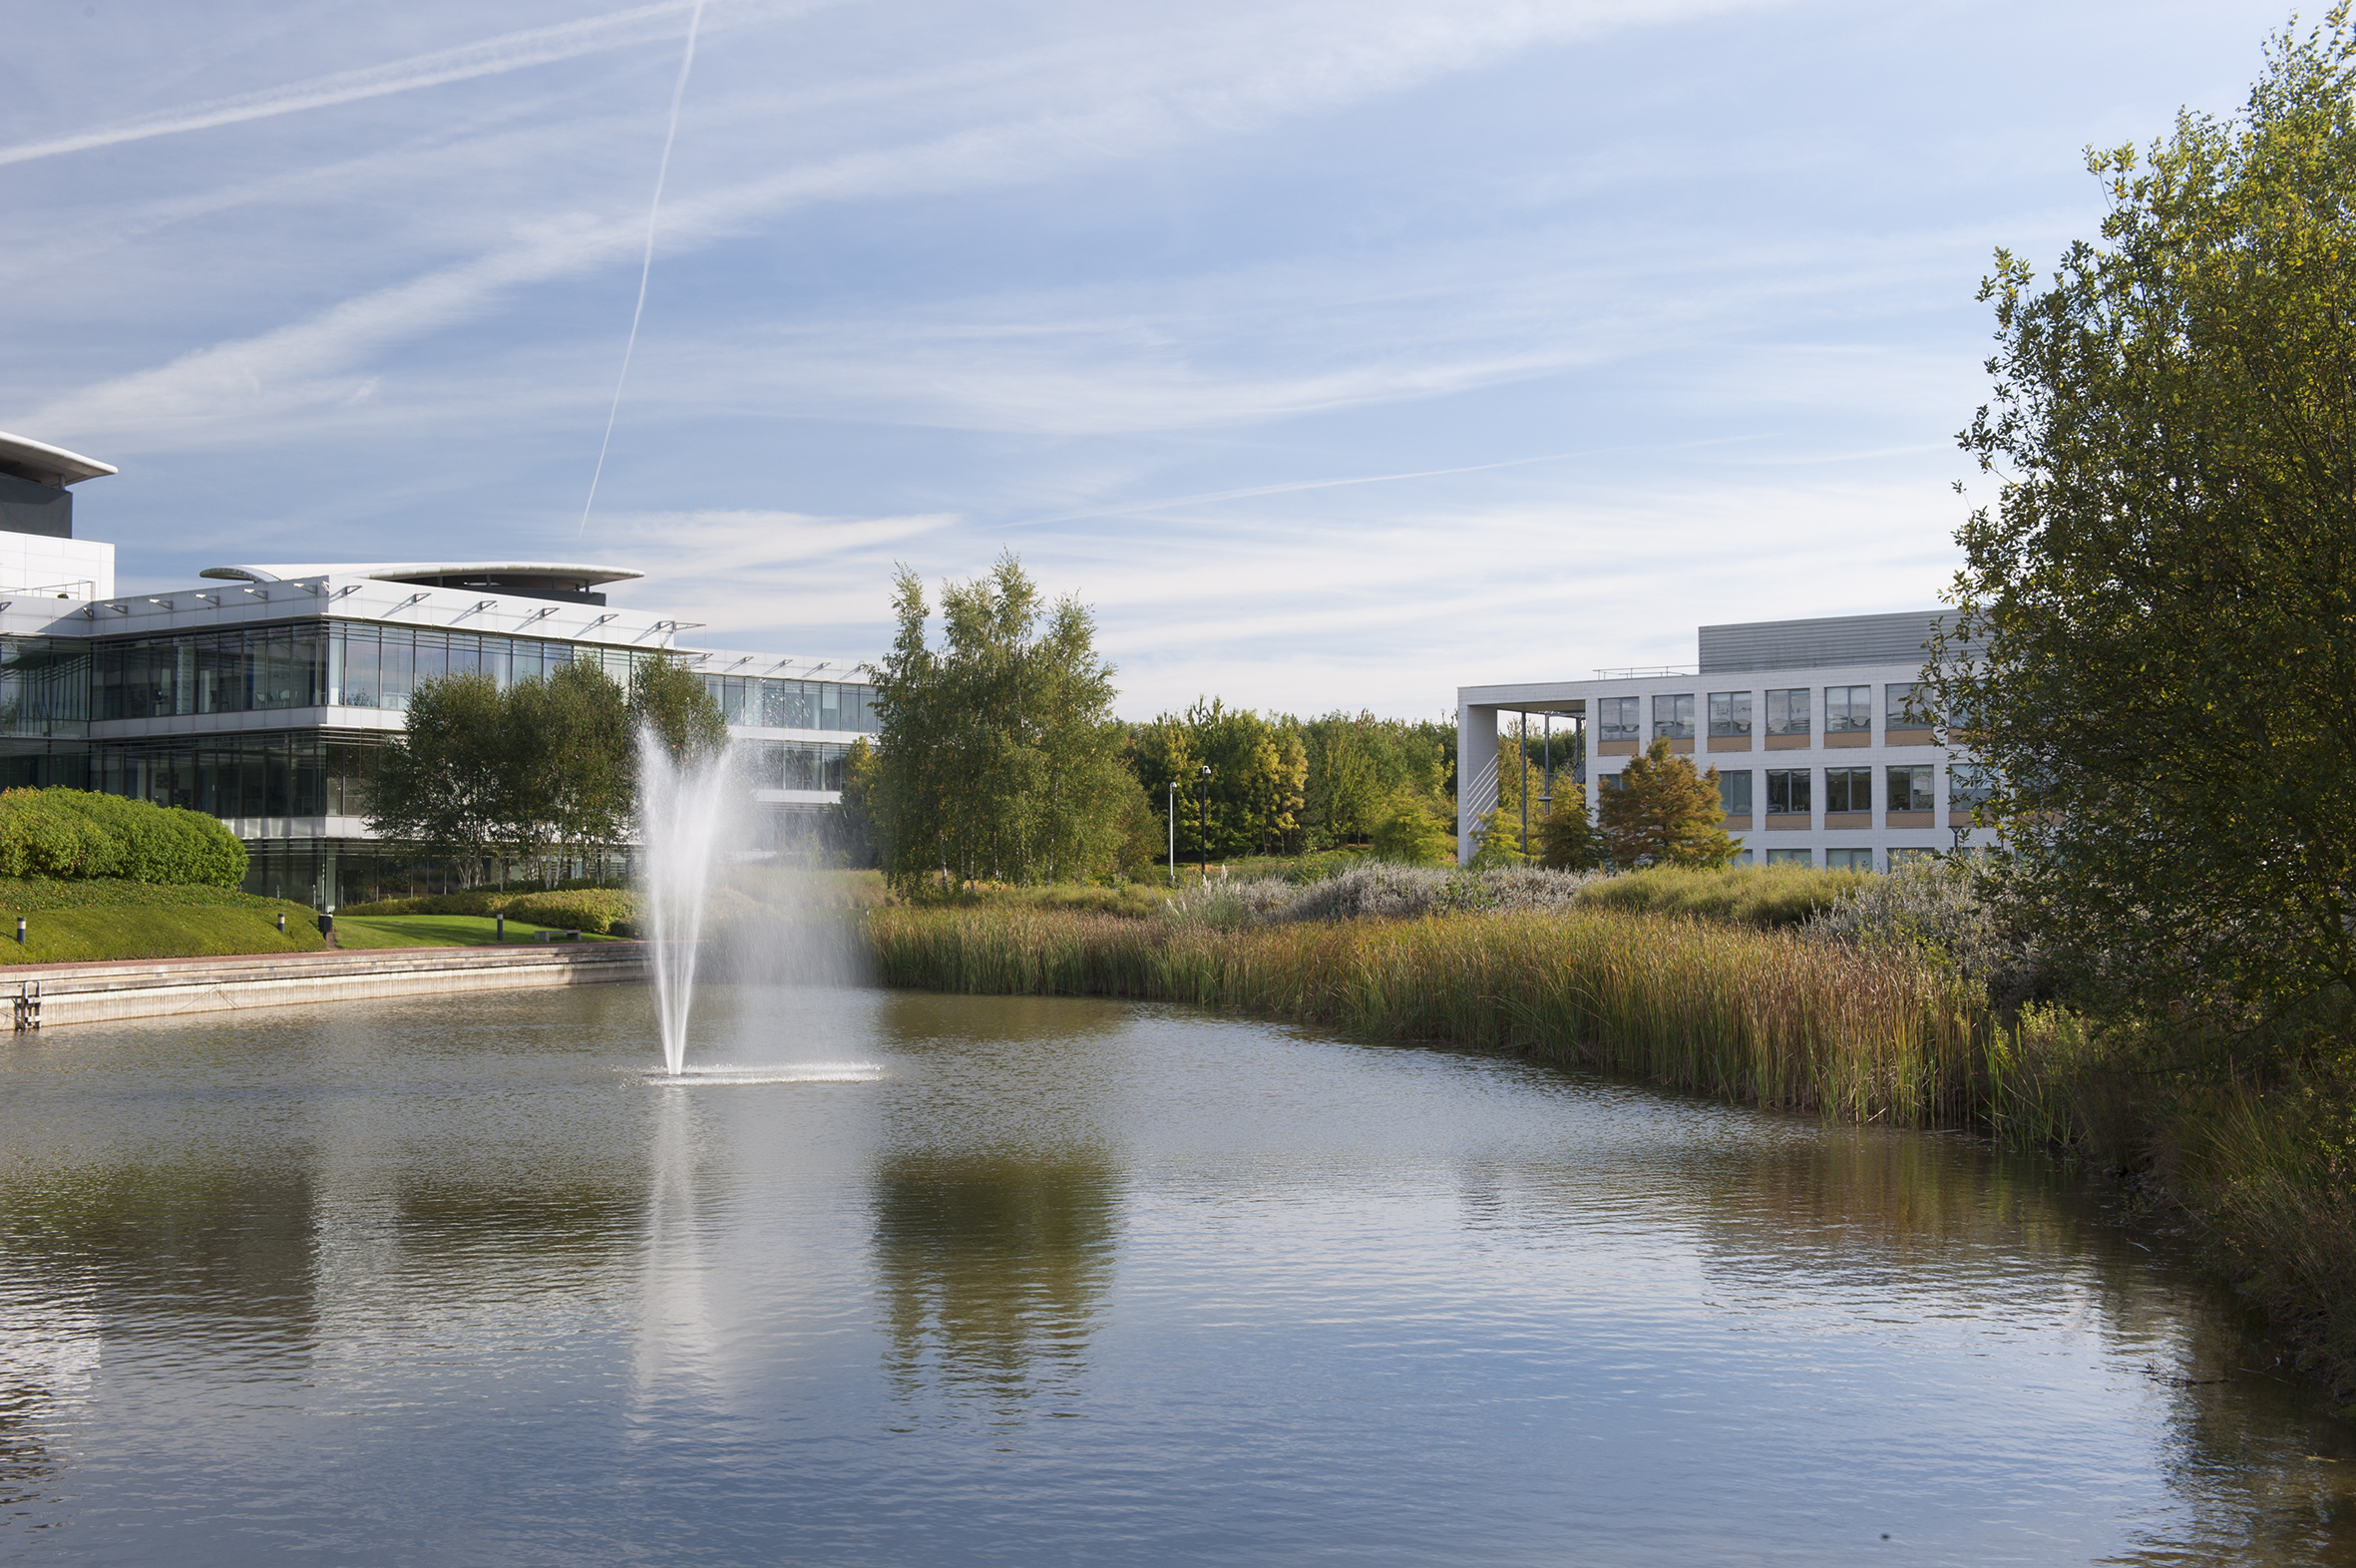 Oxford Science Park lake and fountain with businesses in the background